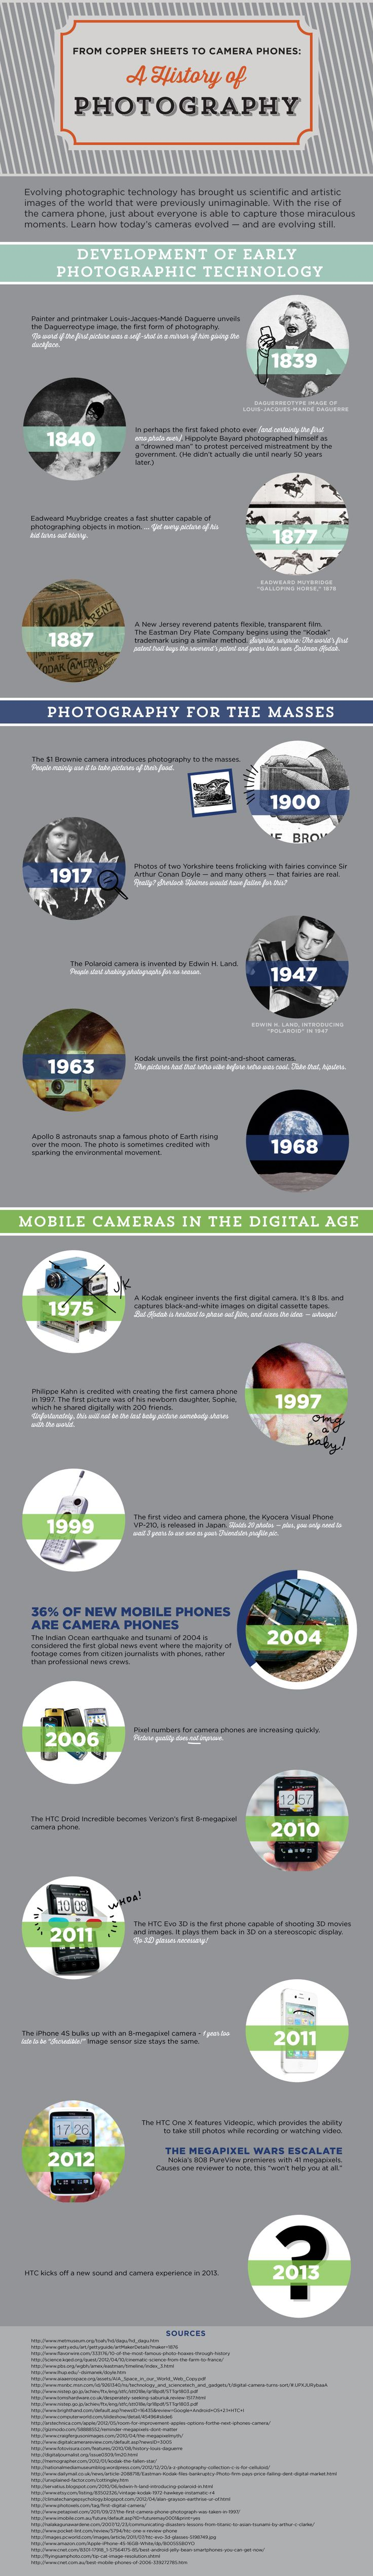 best ideas about history of photography timeline a brief history of photography